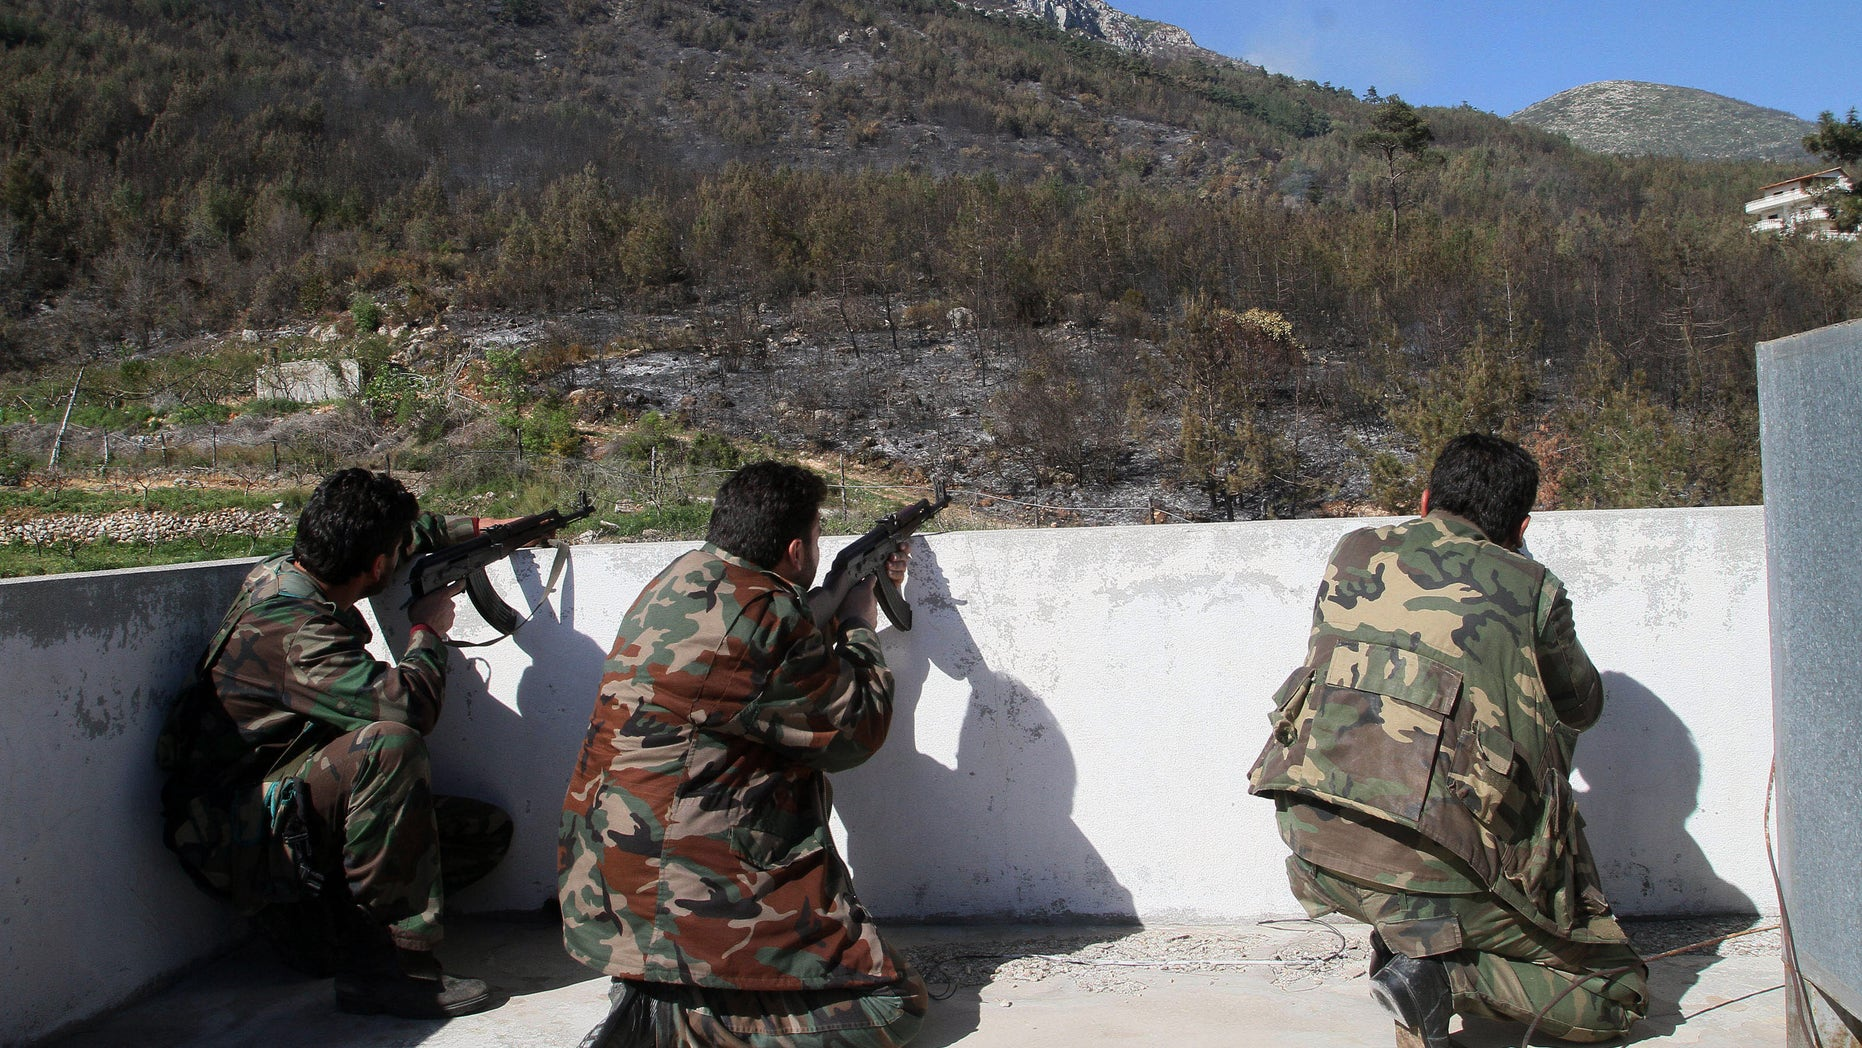 March 27, 2014: In this photo Syrian government soldiers take position during clashes with rebels in Misherfeh town in the province of Latakia, Syria.